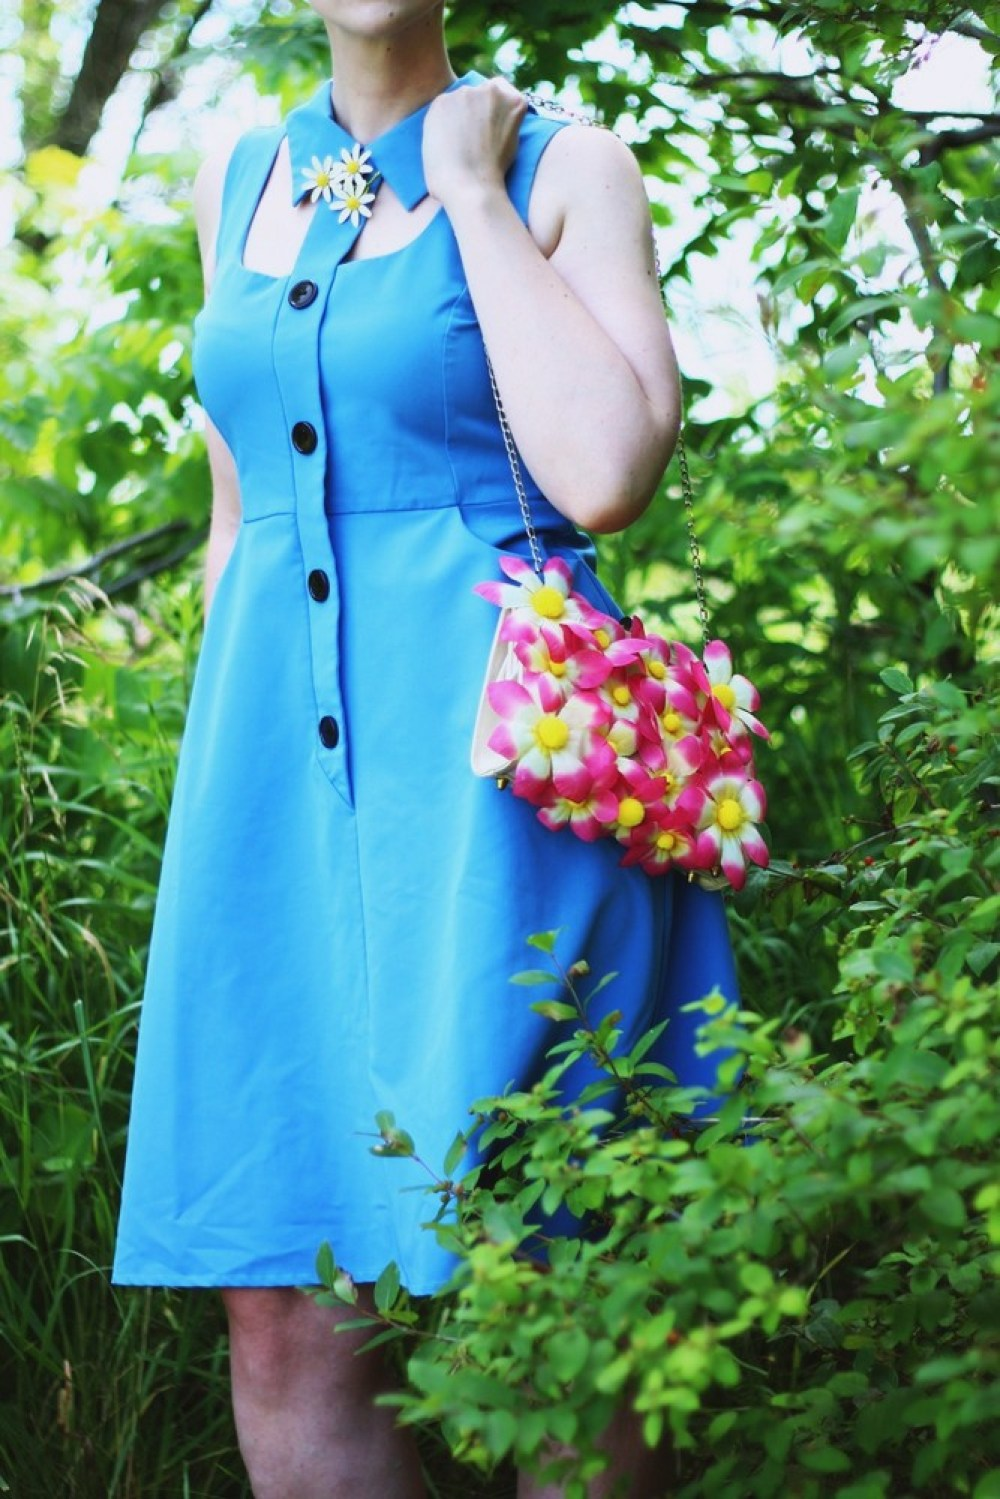 hannah rupp the outfit repeater mod 1960s Cherry Velvet collared dress vintage daisy broach Twiggy haircut makeup